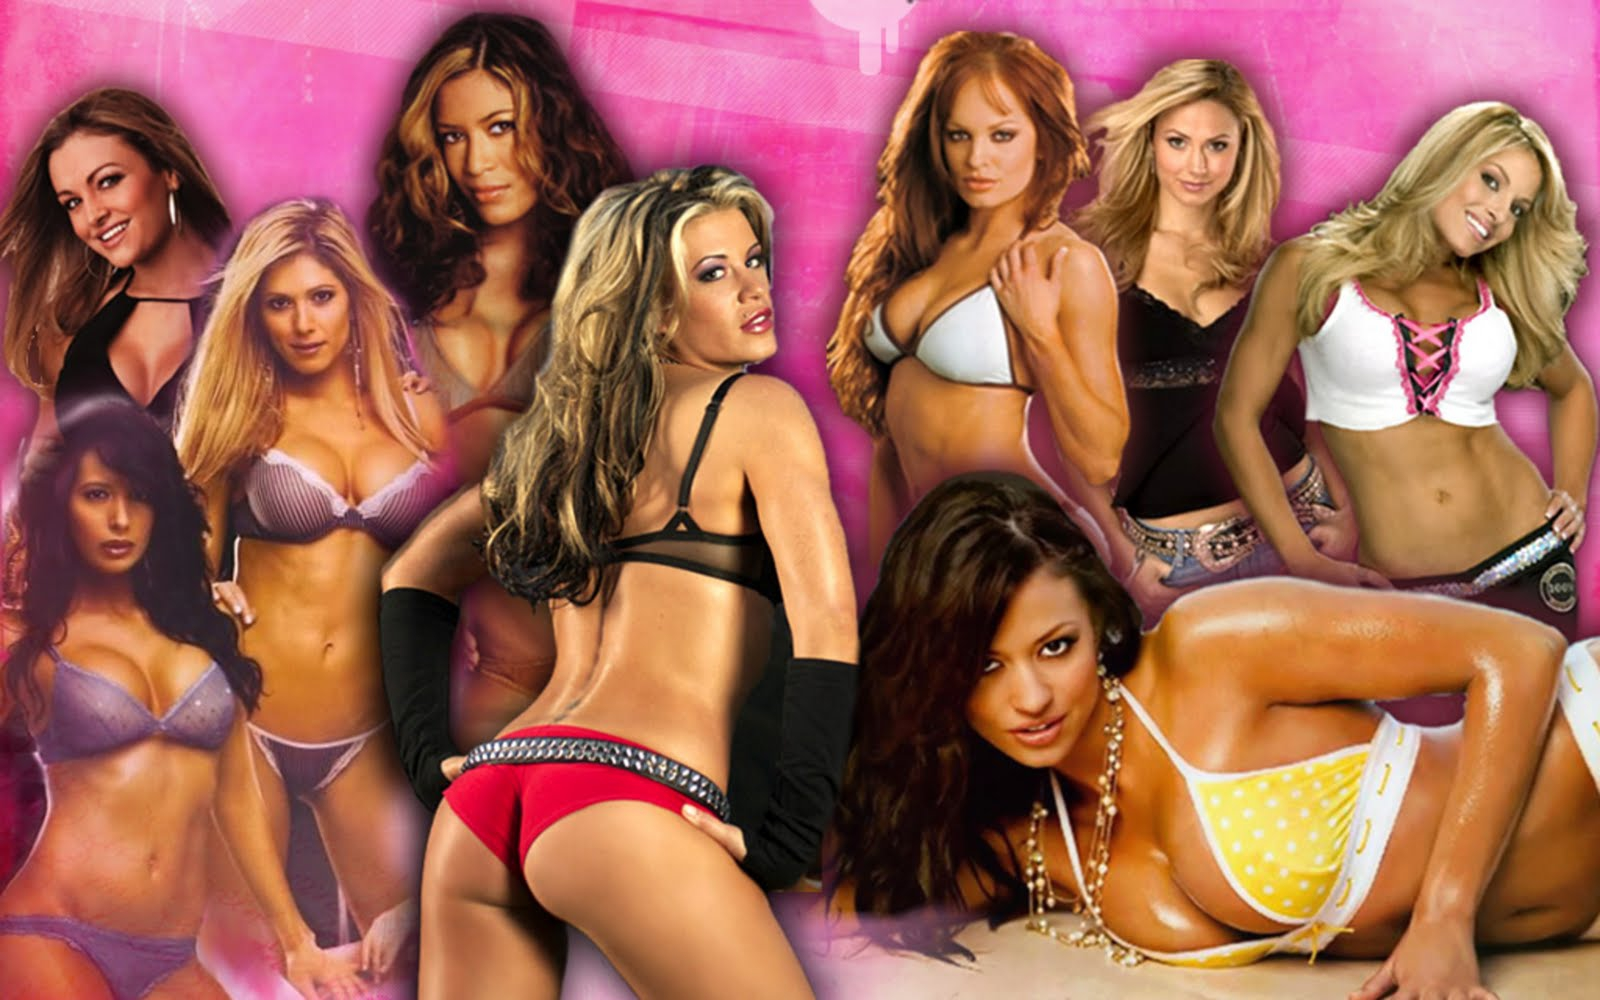 Check out The Sexy Women Wrestlers of the WWE